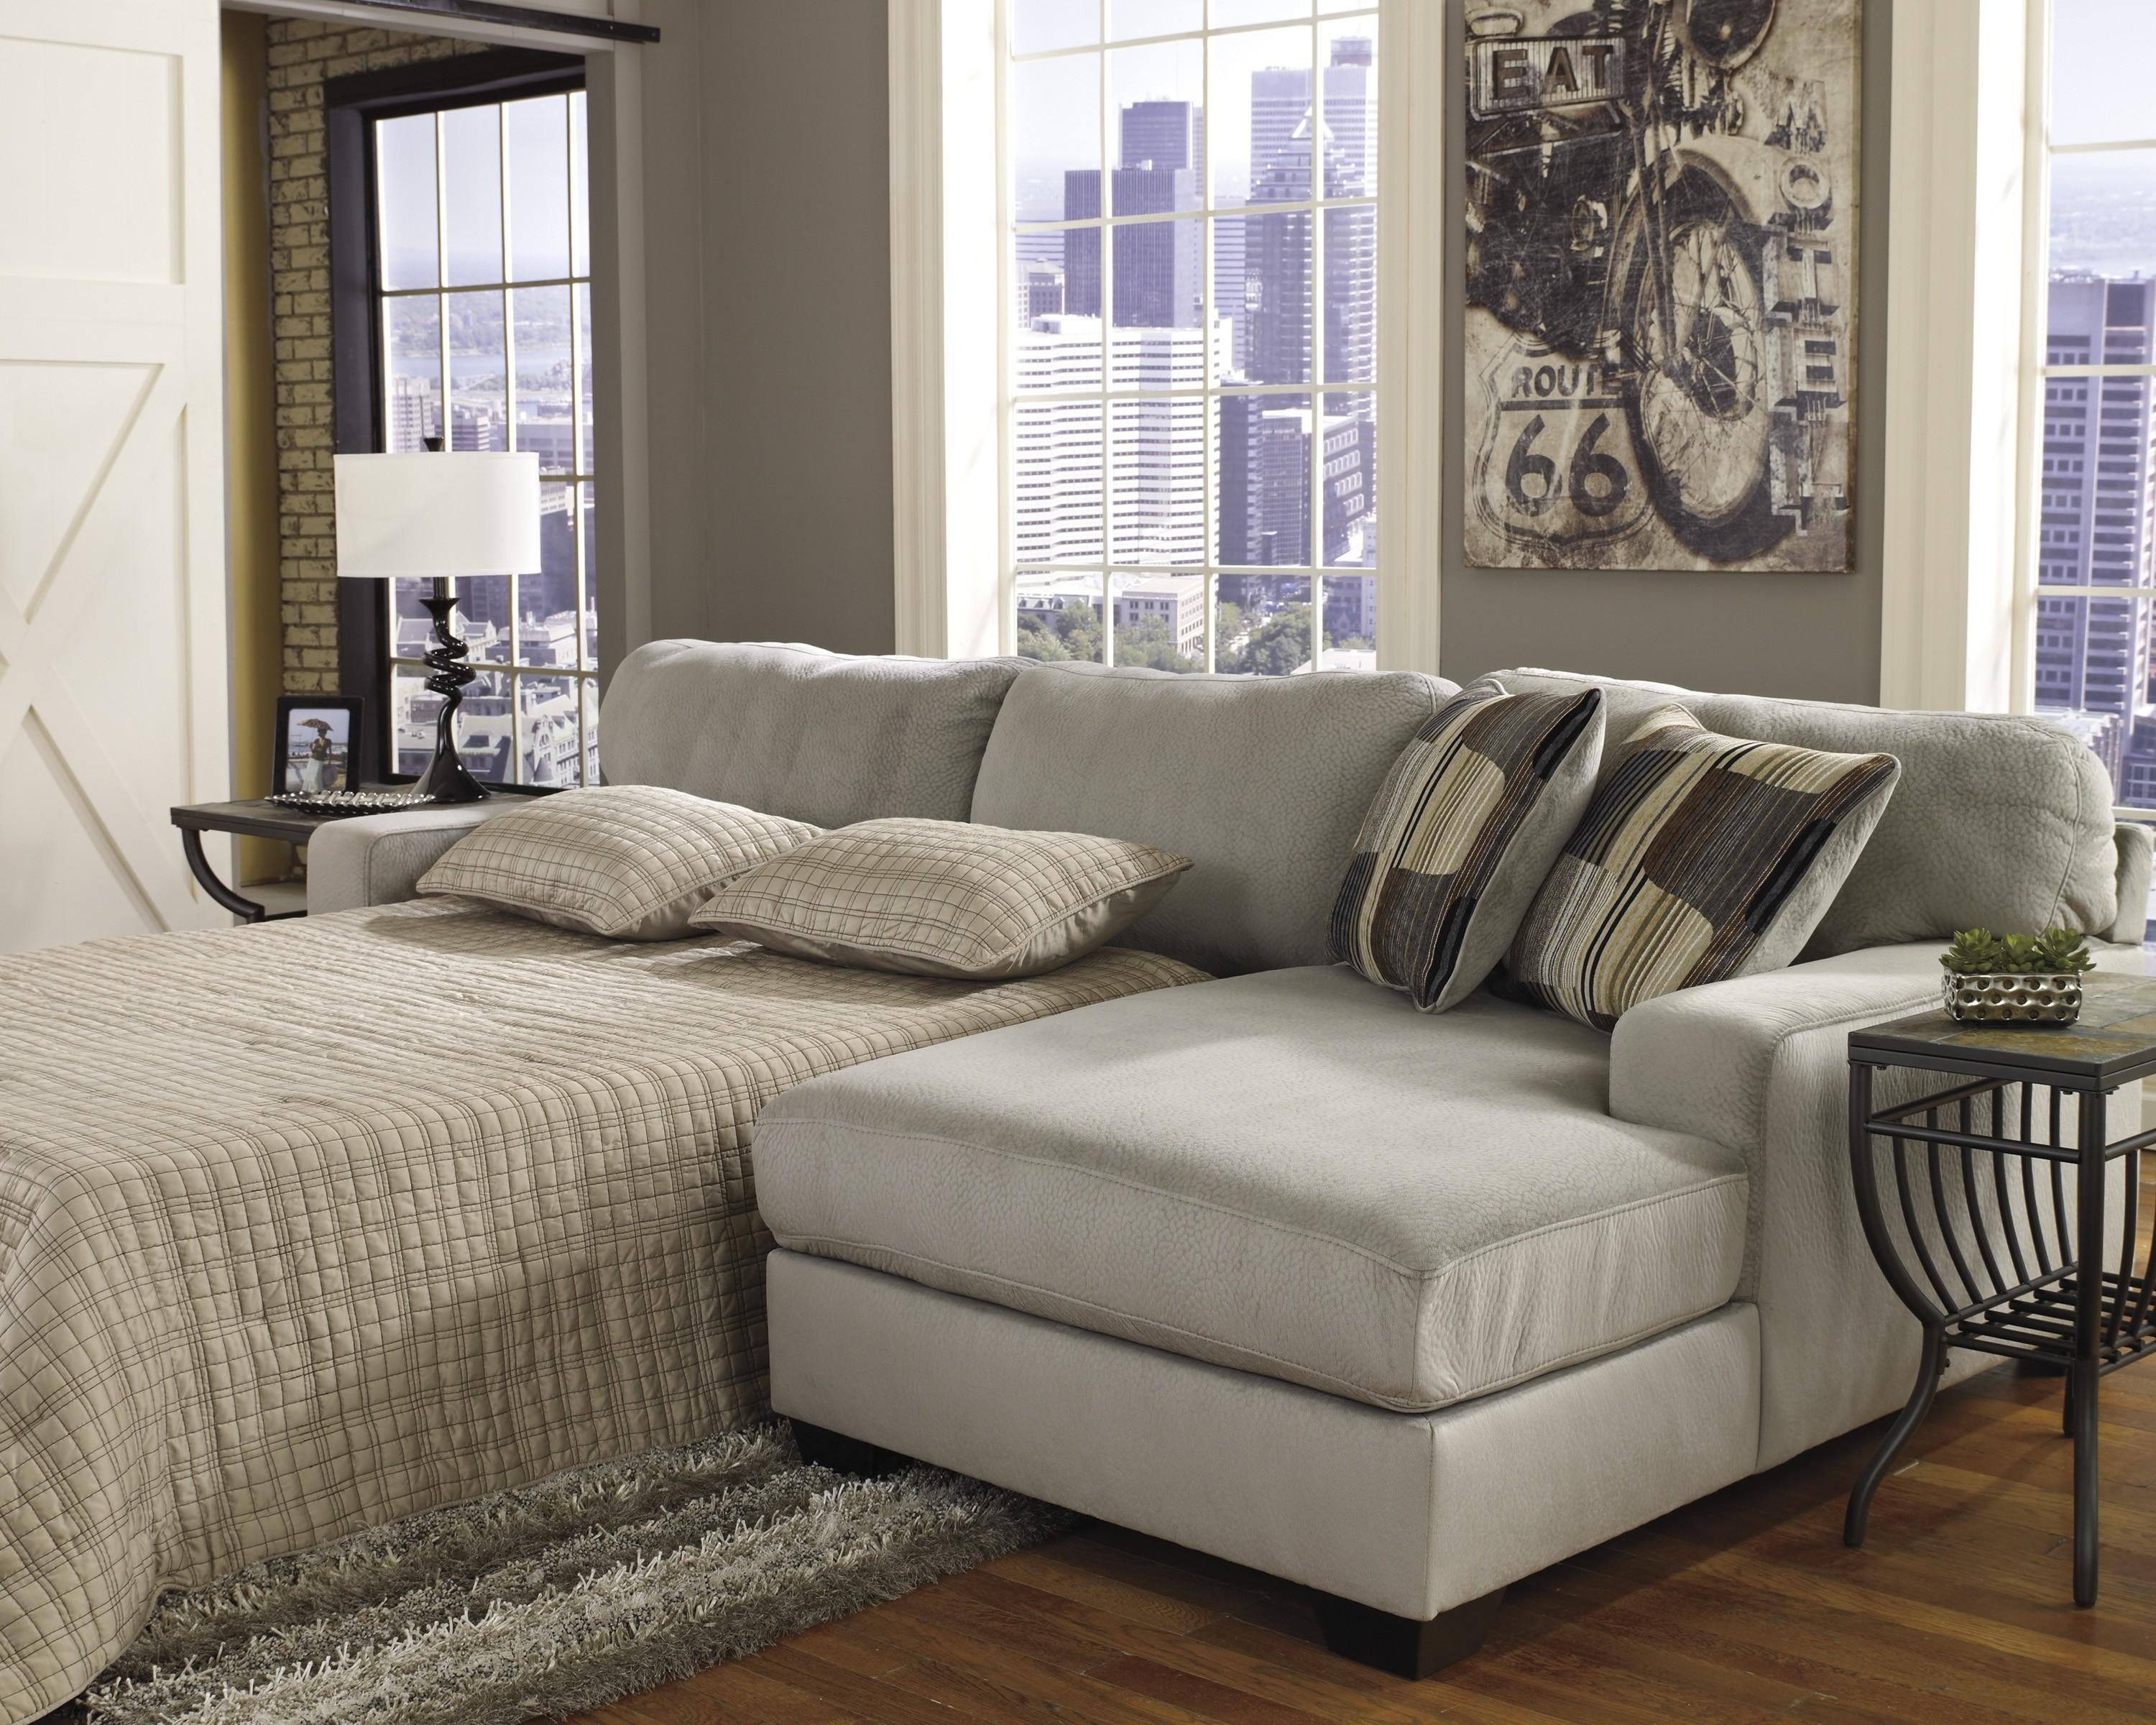 Sleeper Sectional Sofa With Chaise | Tehranmix Decoration For Sectional Sleeper Sofas With Chaise (View 2 of 20)